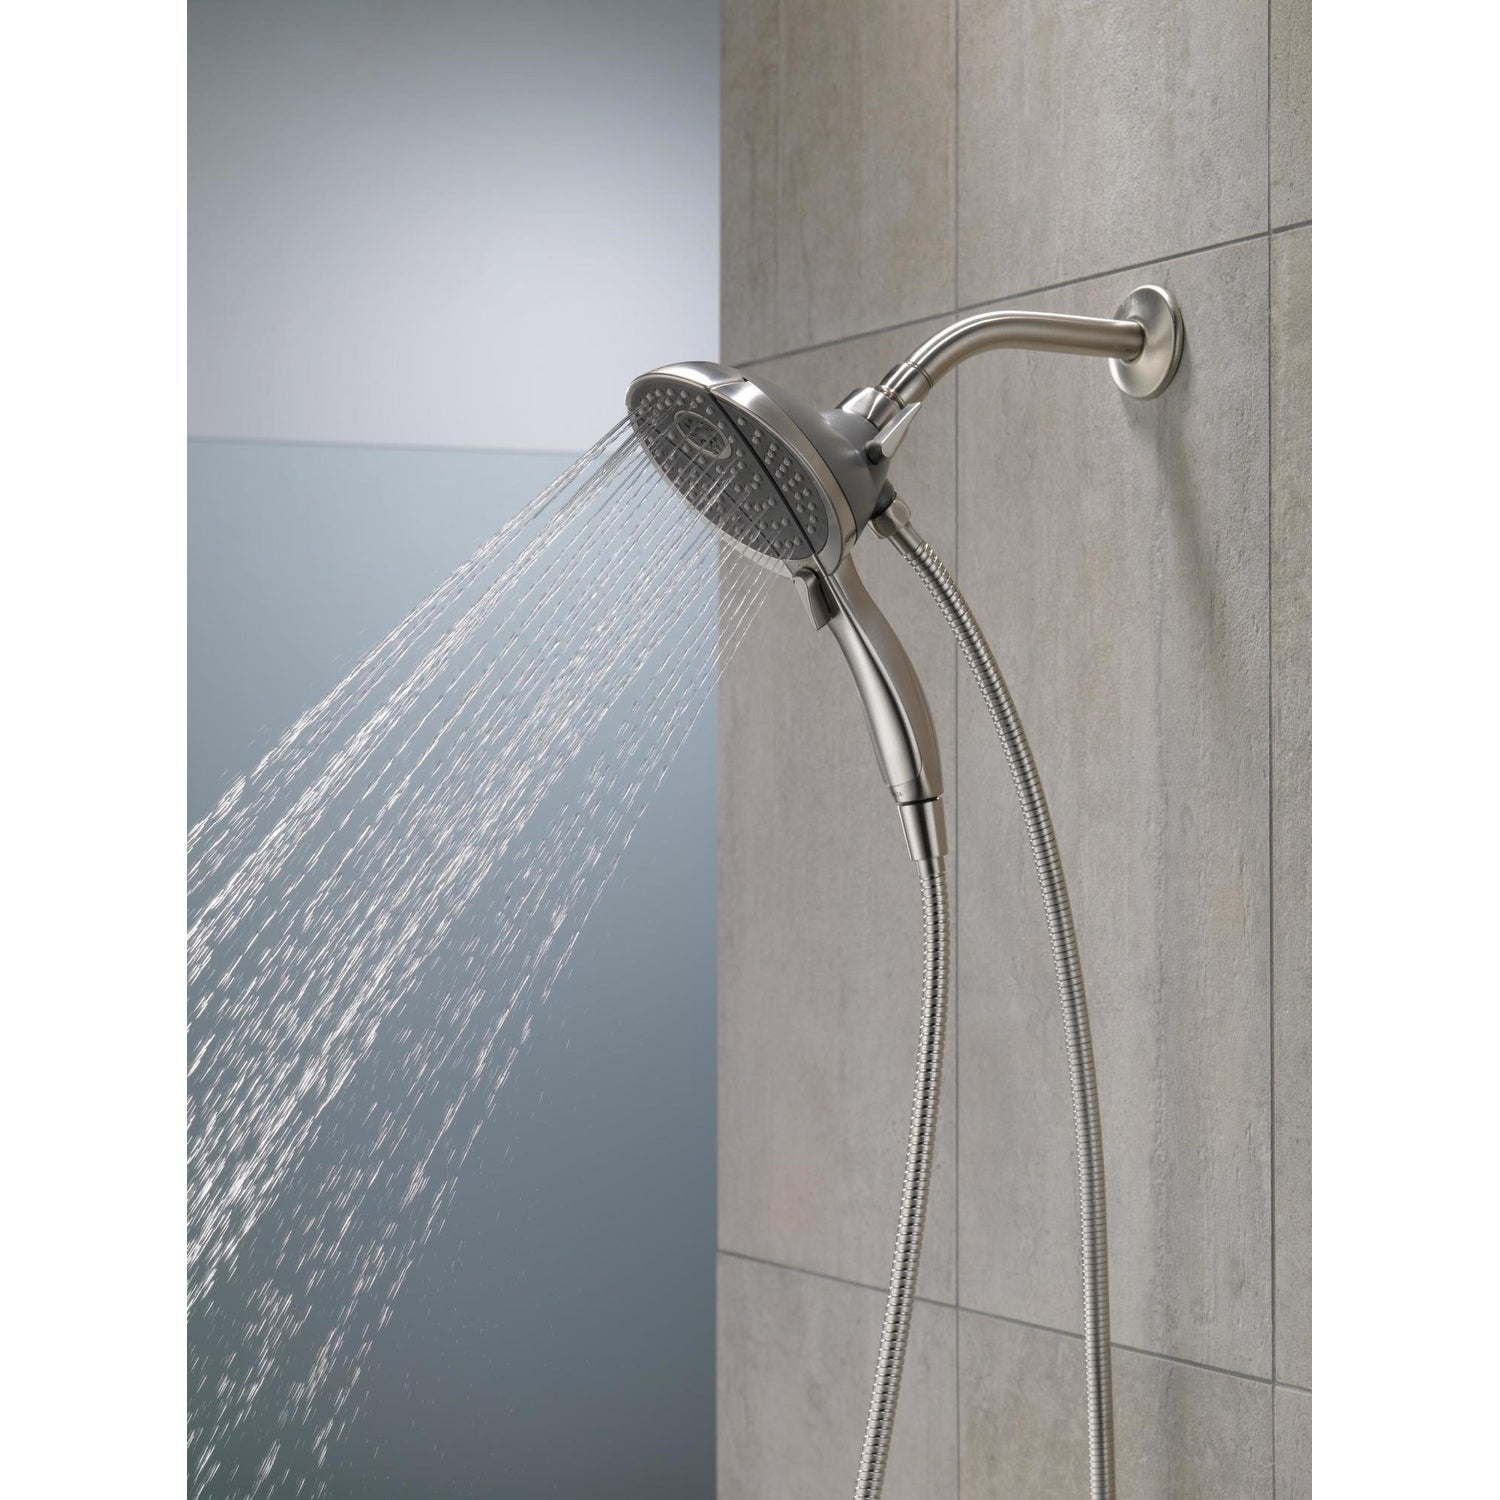 Delta 58467 2 5 Gpm In2ition 2 In 1 Multi Function Shower Head And Hand Shower